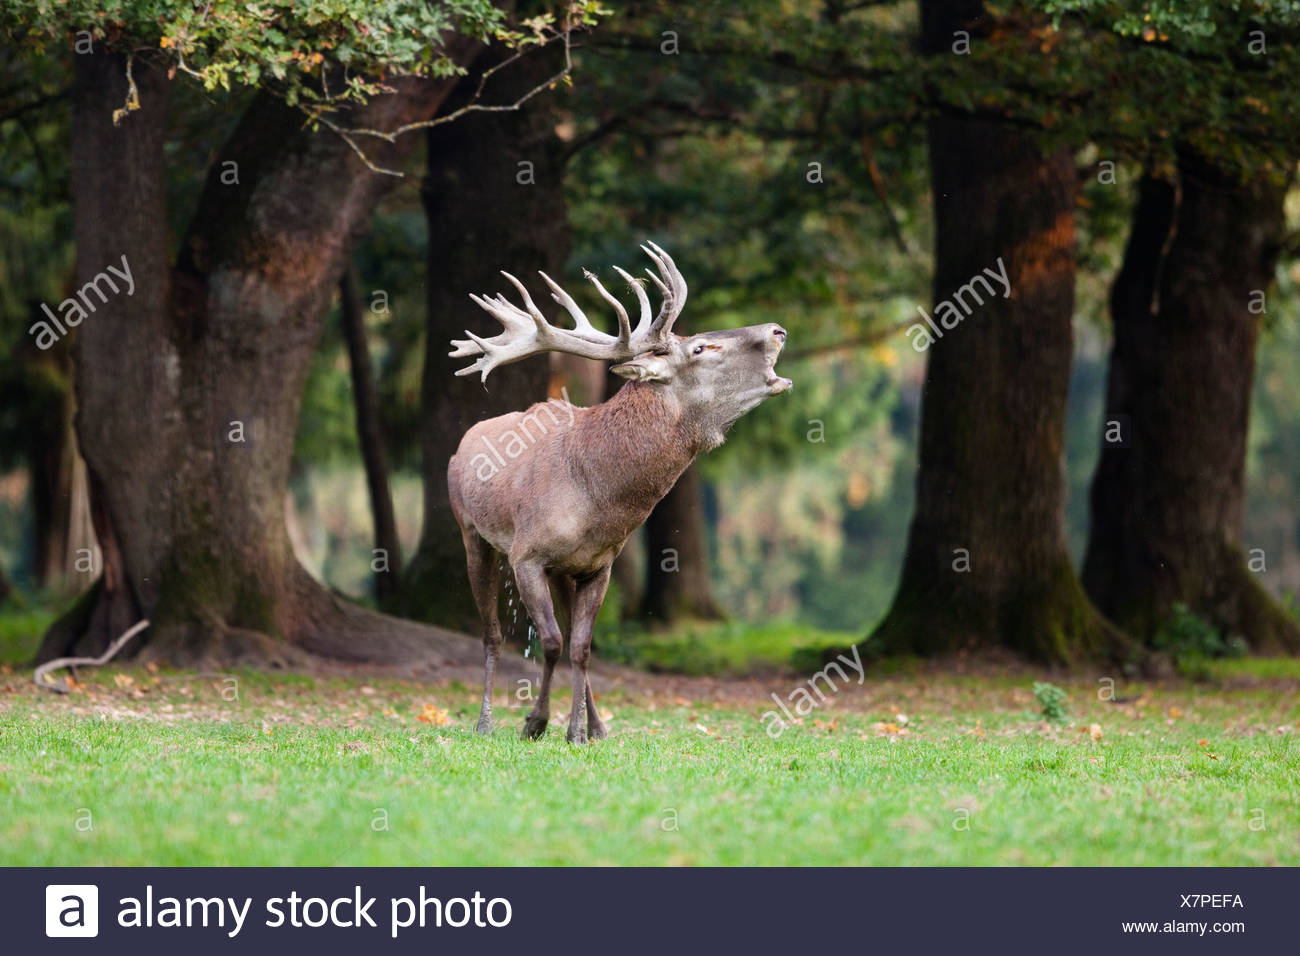 Red deer (Cervus elaphus) belling, Germany, Europe - Stock Image